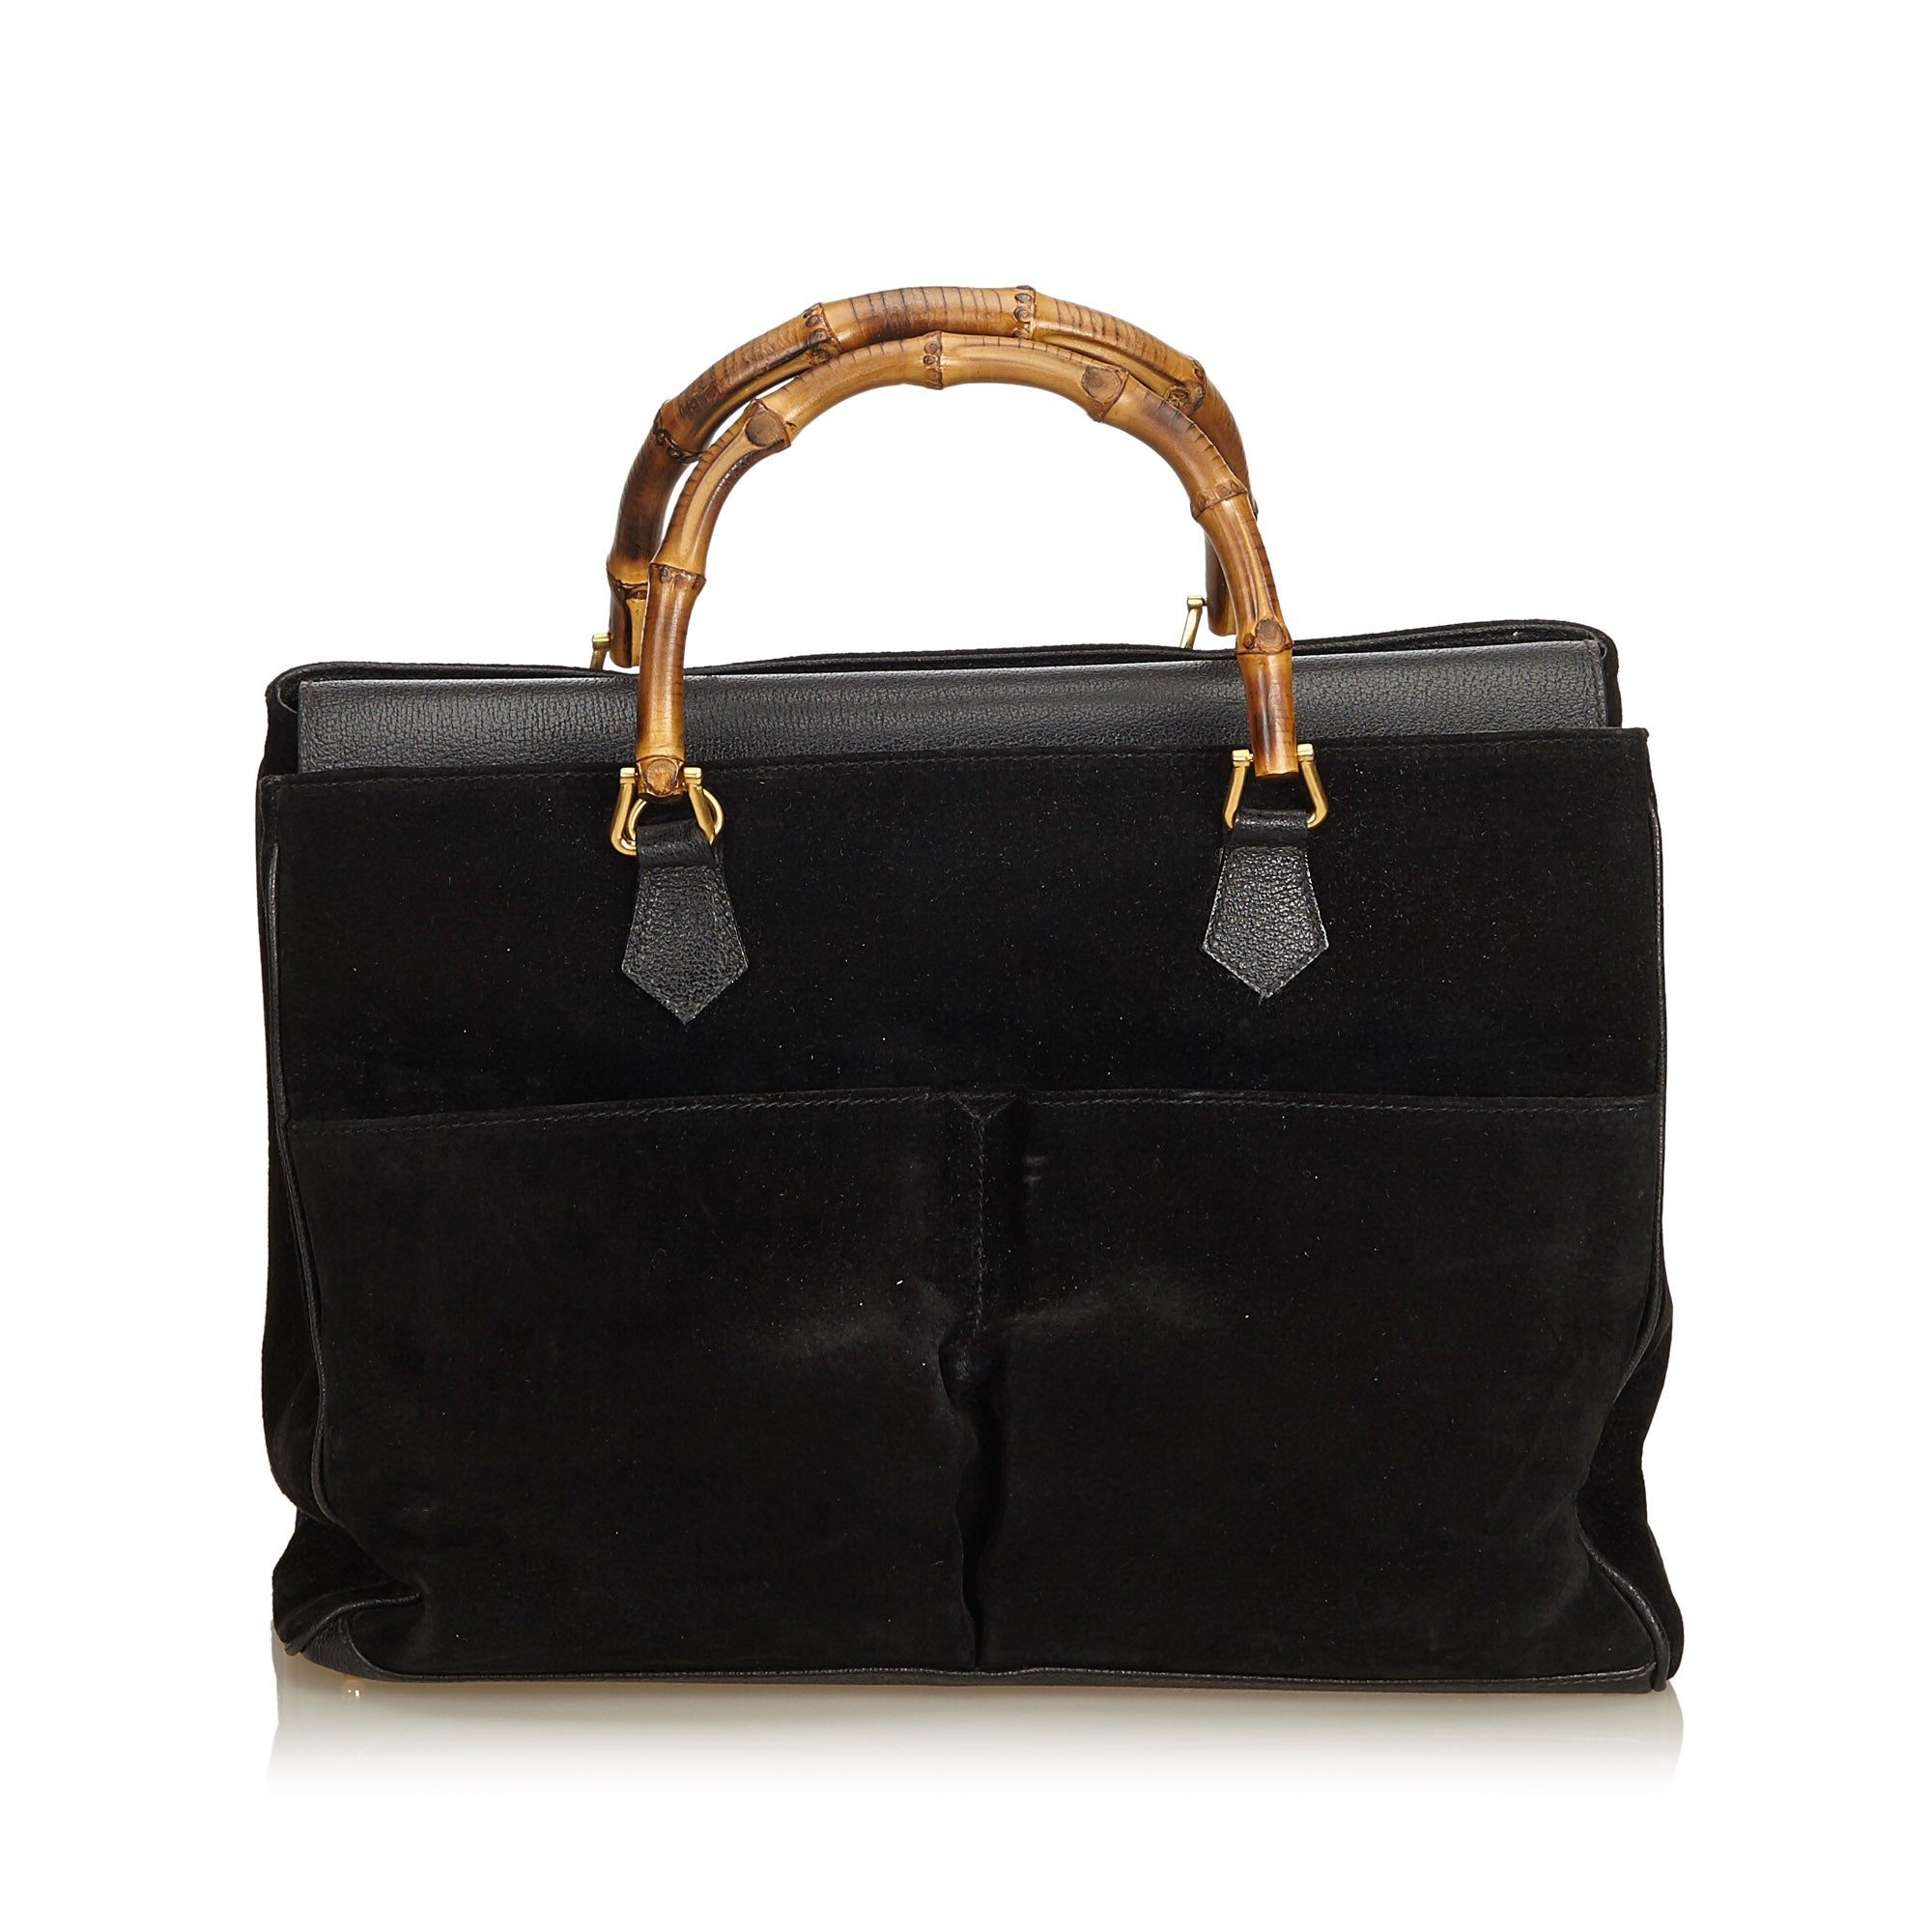 08b0a482a08d0 GUCCI BAMBOO SUEDE TOP HANDLE BAG Shop online the best value on authentic  designer used preowned ...